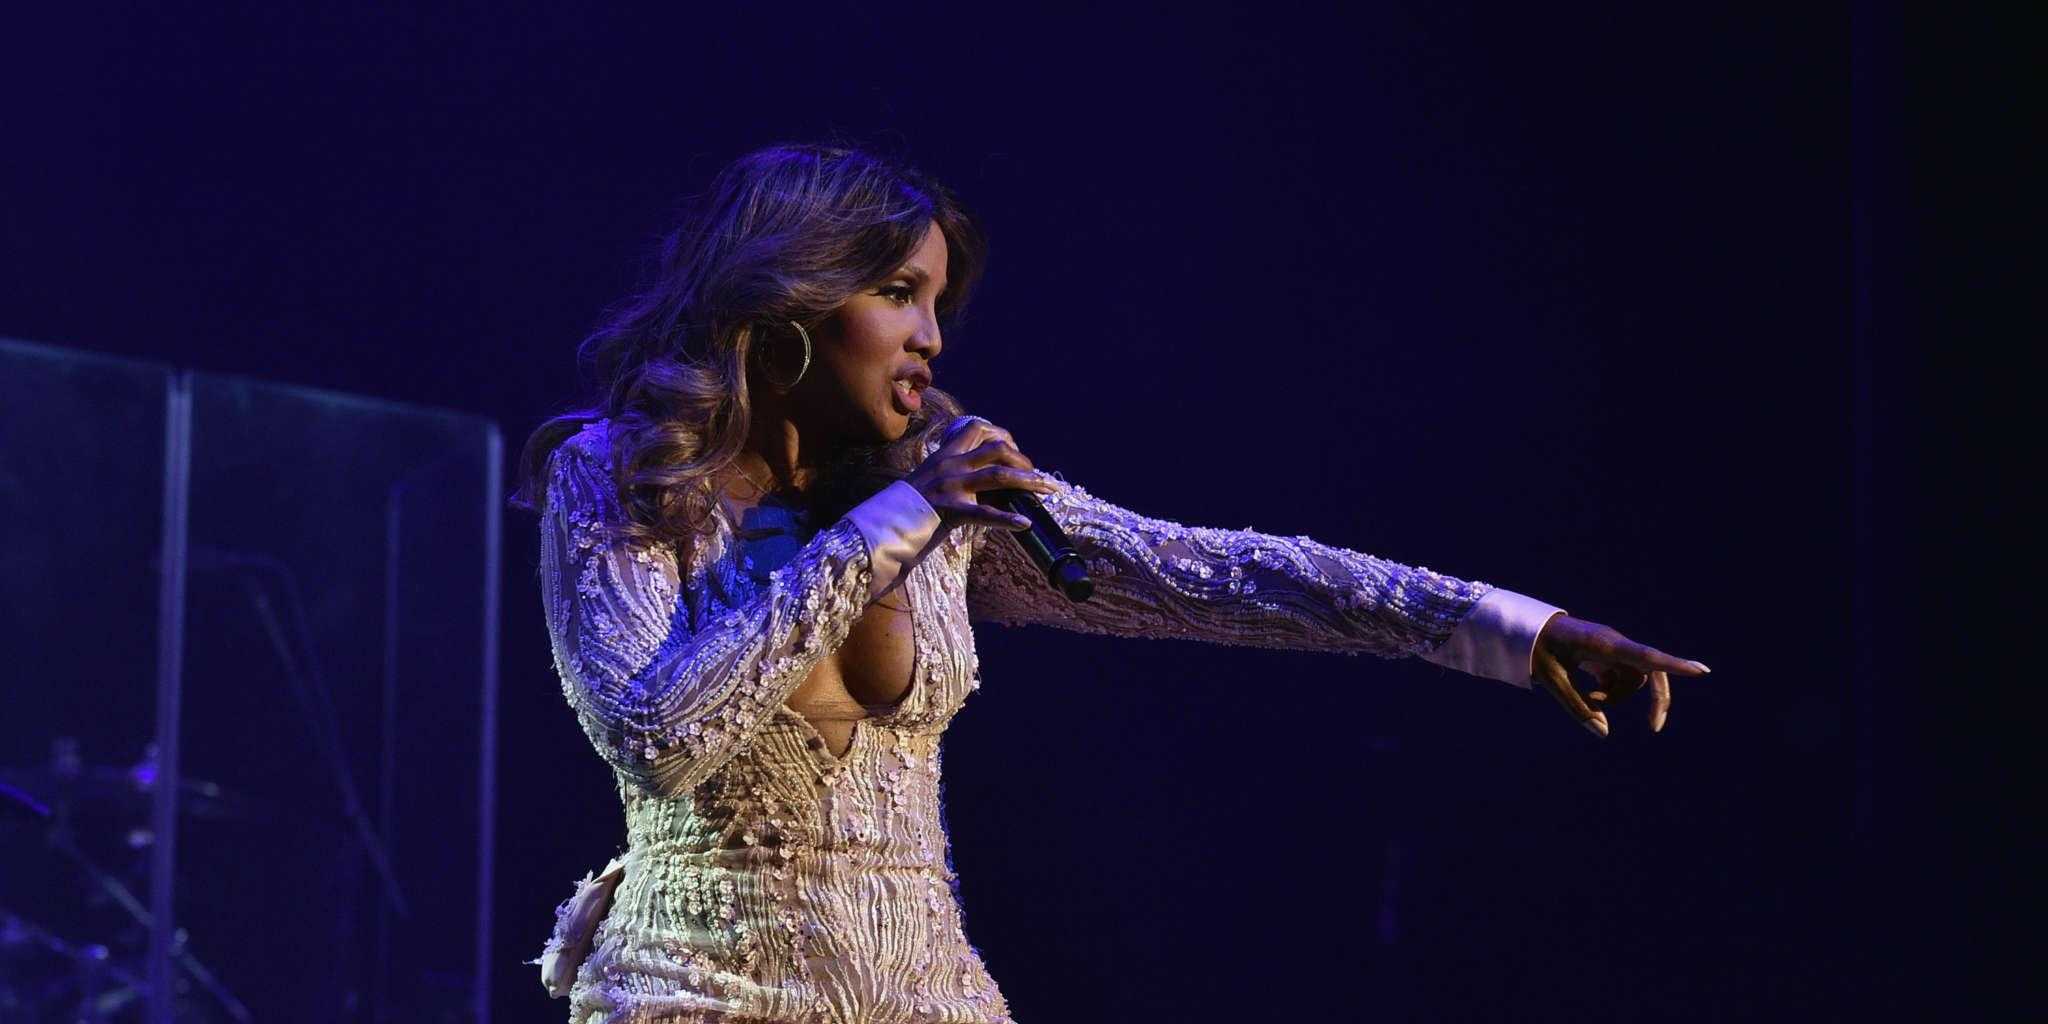 Toni Braxton Wishes Stevie Wonder A Happy 70th Birthday - Check Out The Video She Shared To Mark This Event